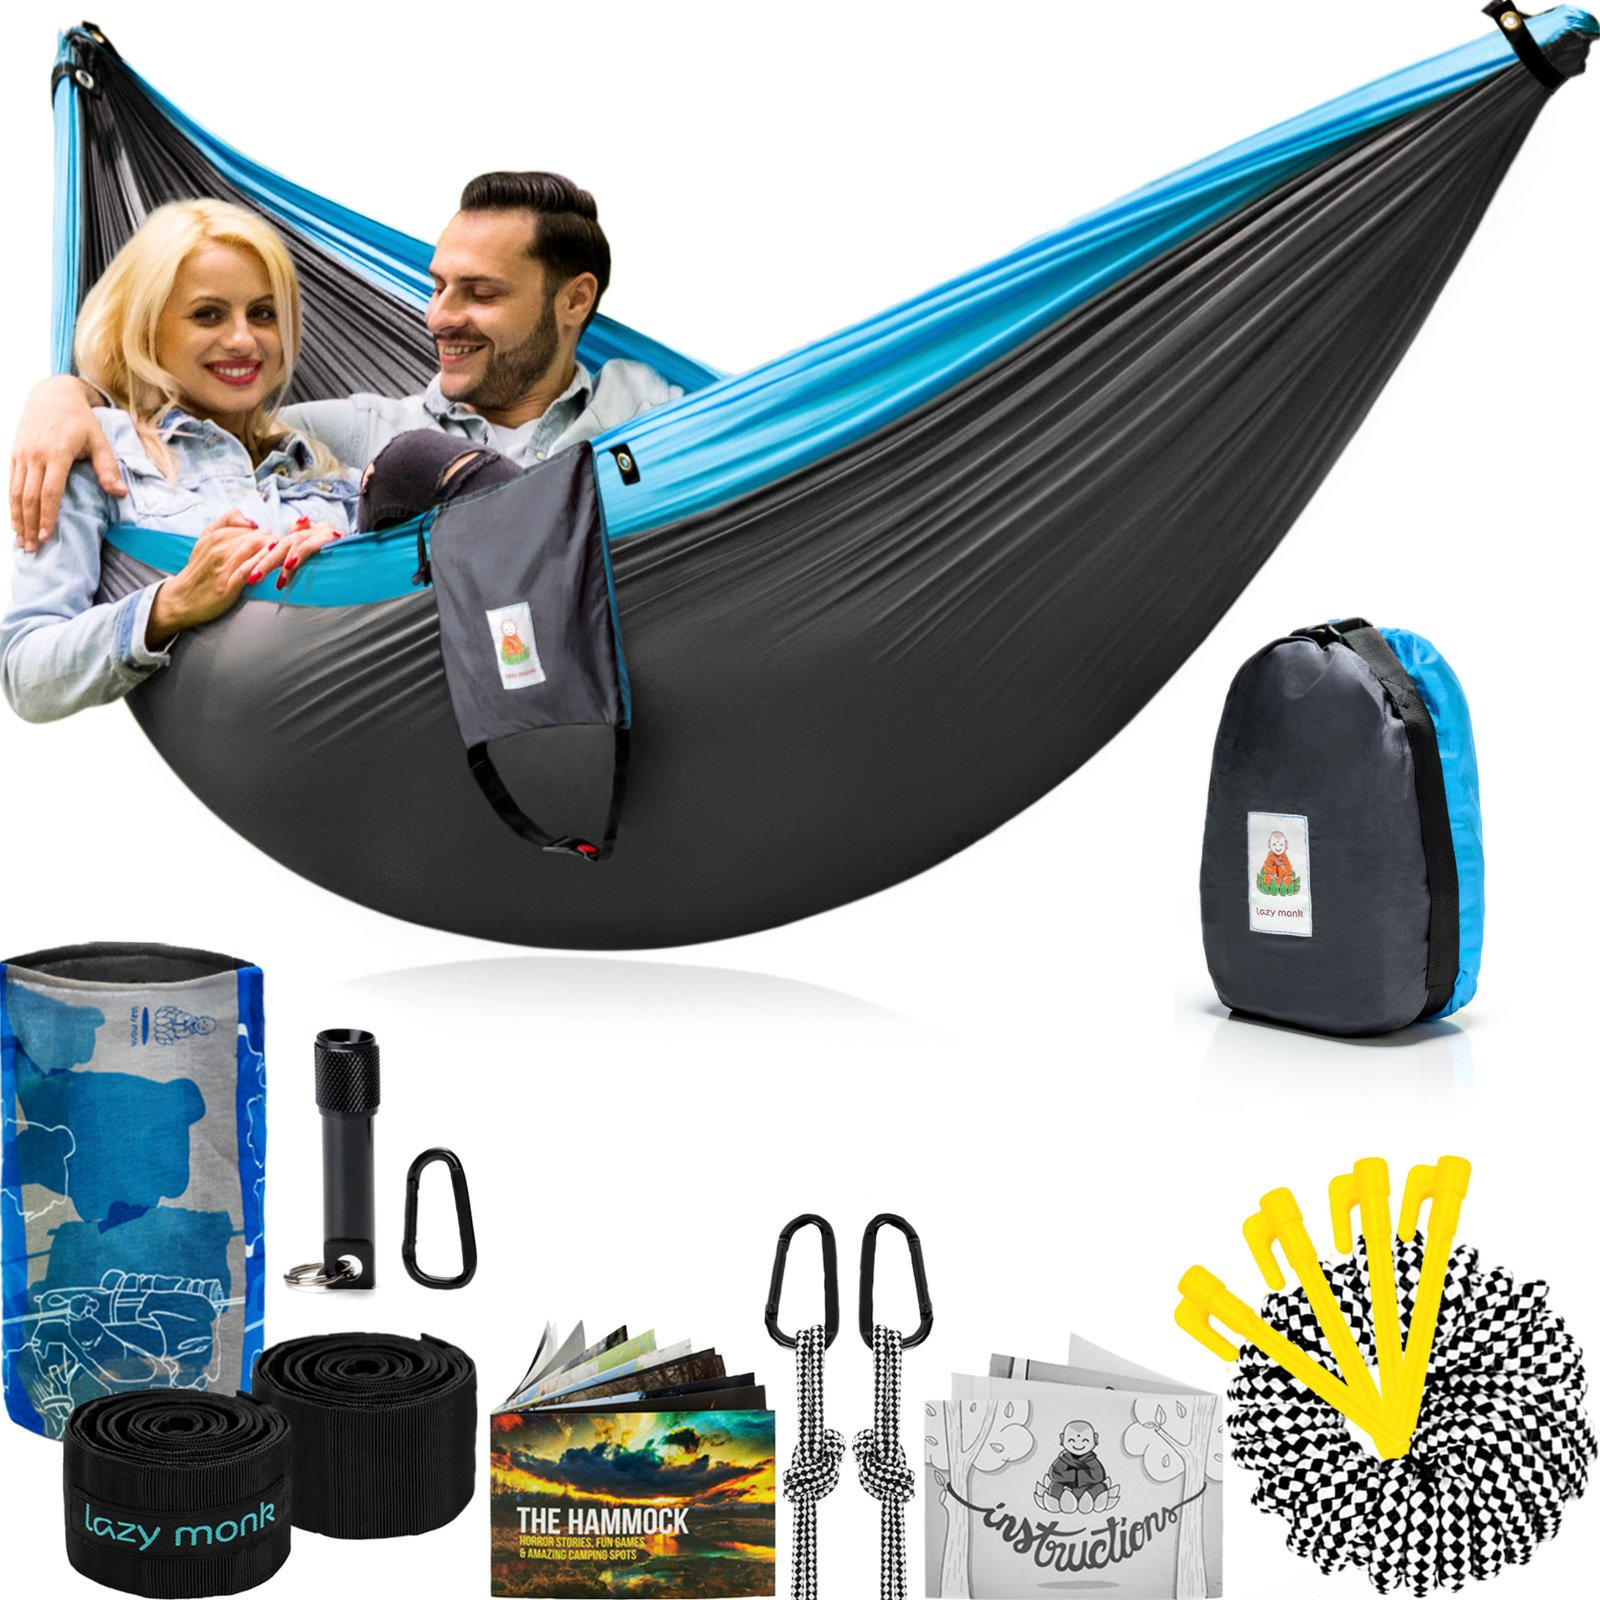 Double Camping Hammock With Straps – UNIQUE 4in1│Complete Fast Setup Hammocks Bundle, Waterproof, Lightweight Parachute Nylon, in Compression Tree Sack Blue by Lazy Monk